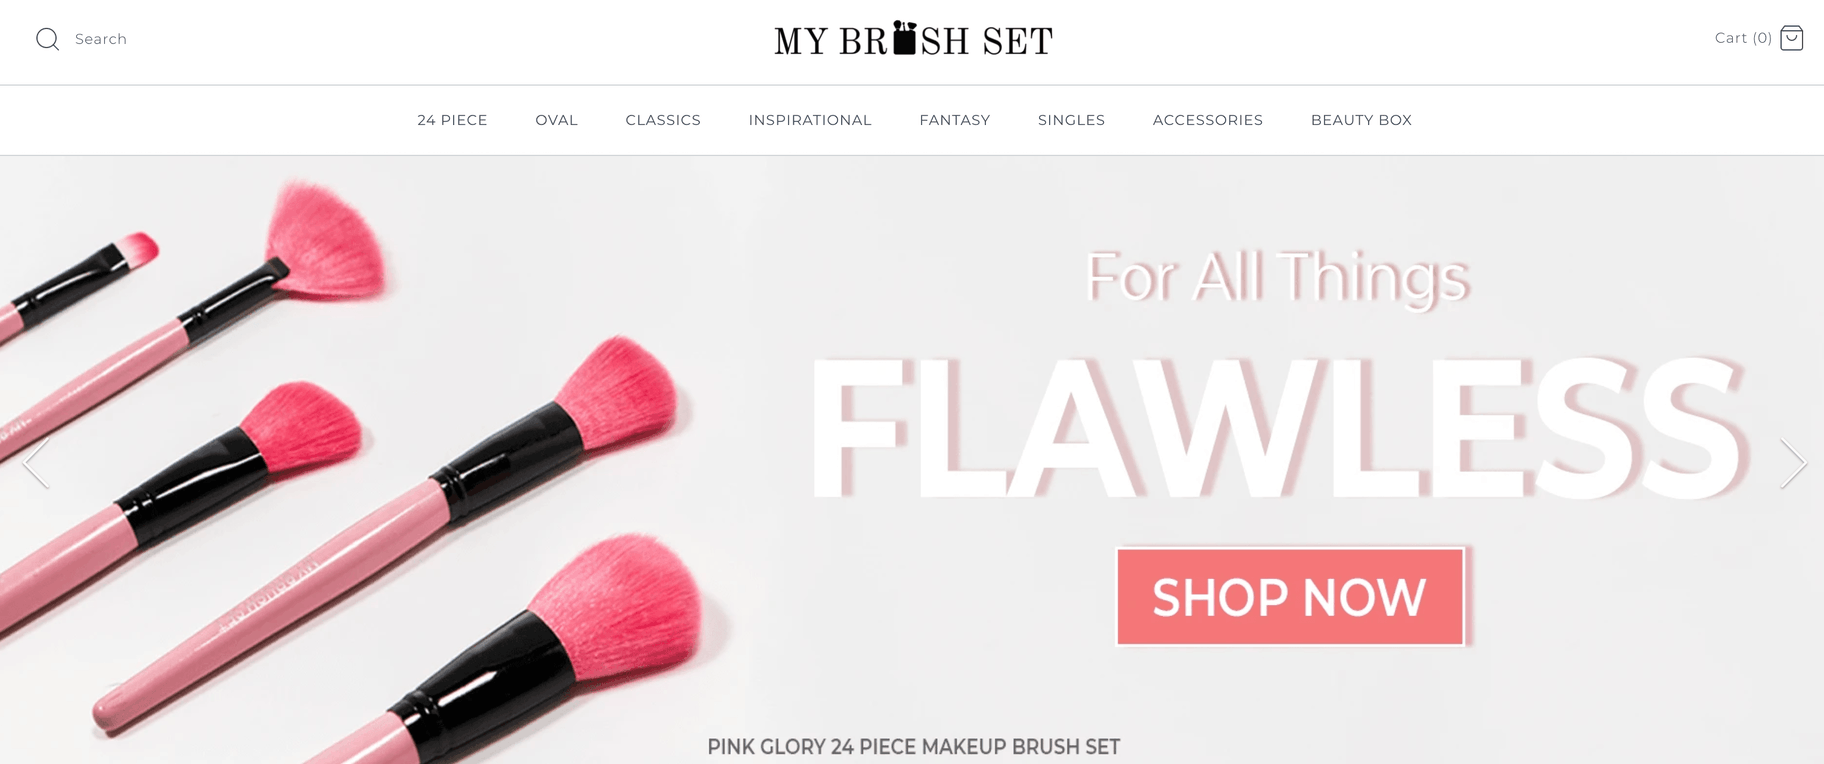 my makeup brush sets